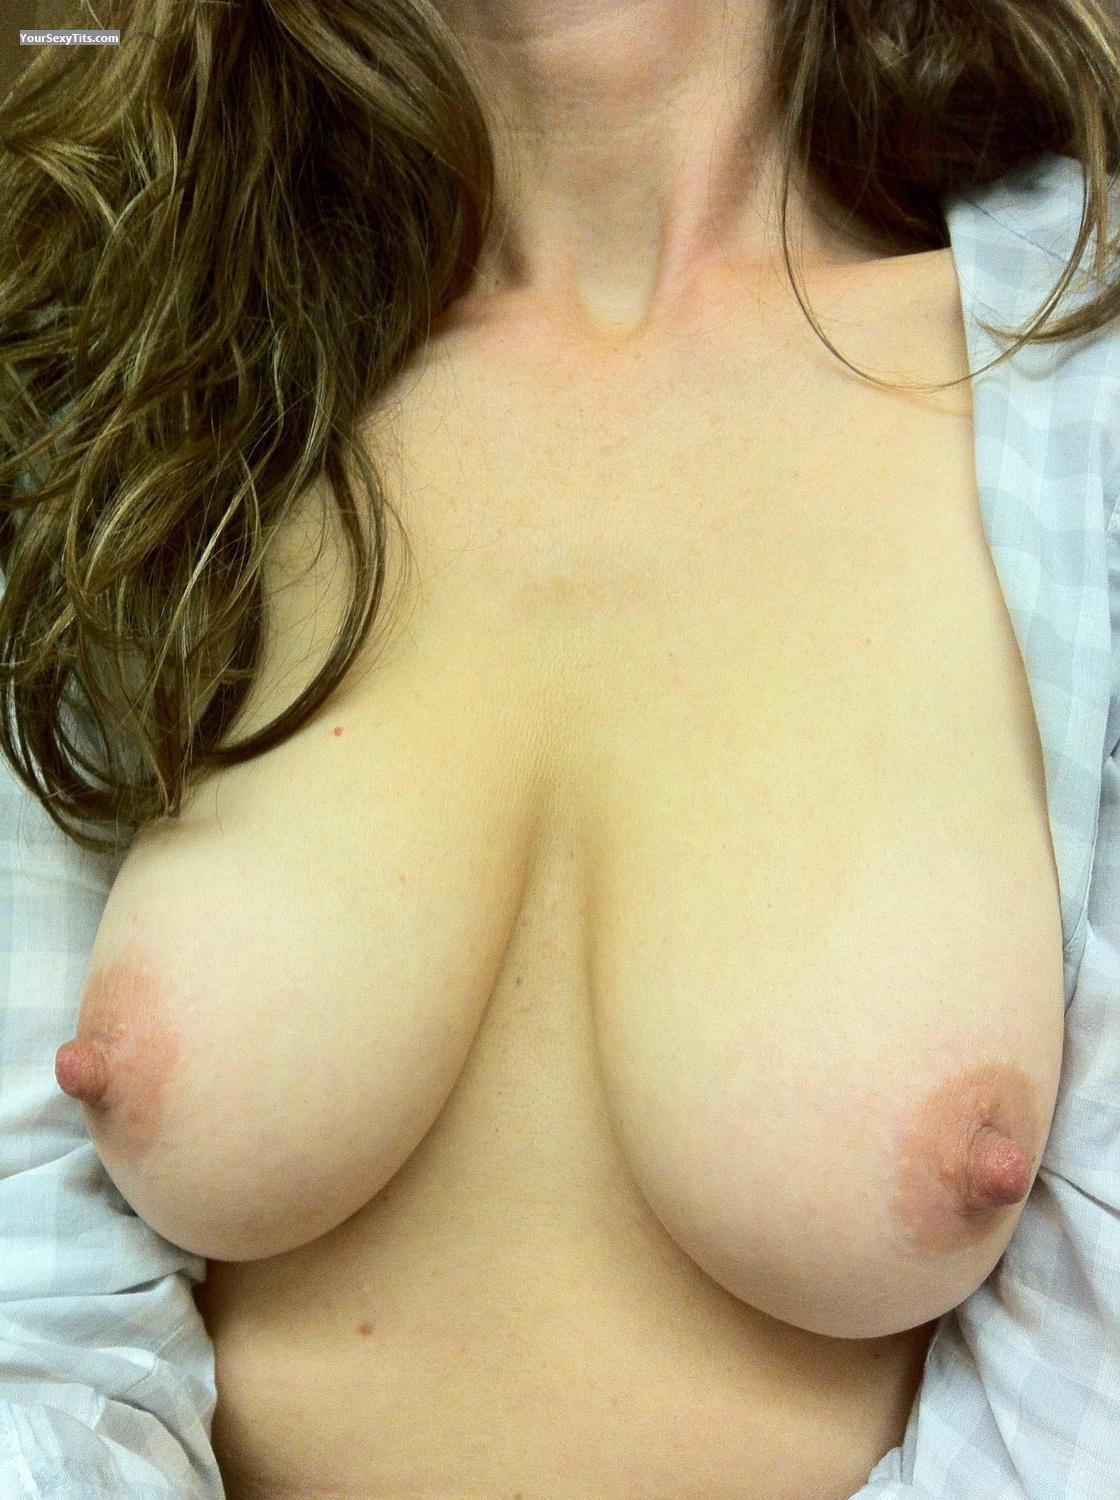 Tit Flash: My Medium Tits By IPhone (Selfie) - Clara from United States